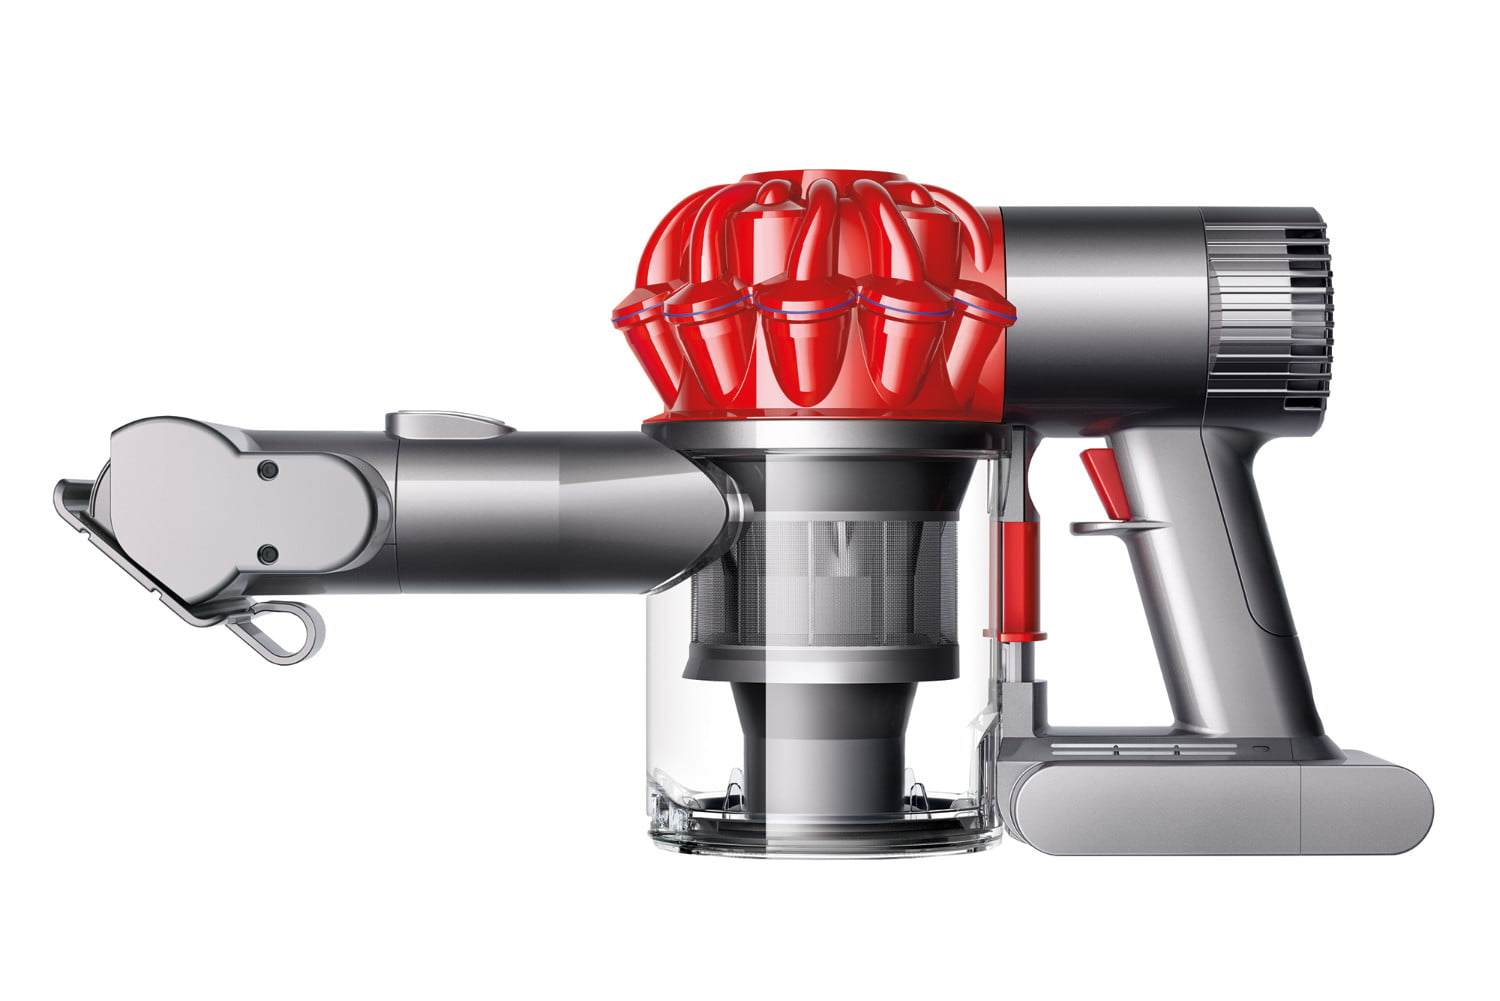 walmart knocks down prices on dyson handheld vacuums in post prime day sale v6 trigger vacuum car  boat 1